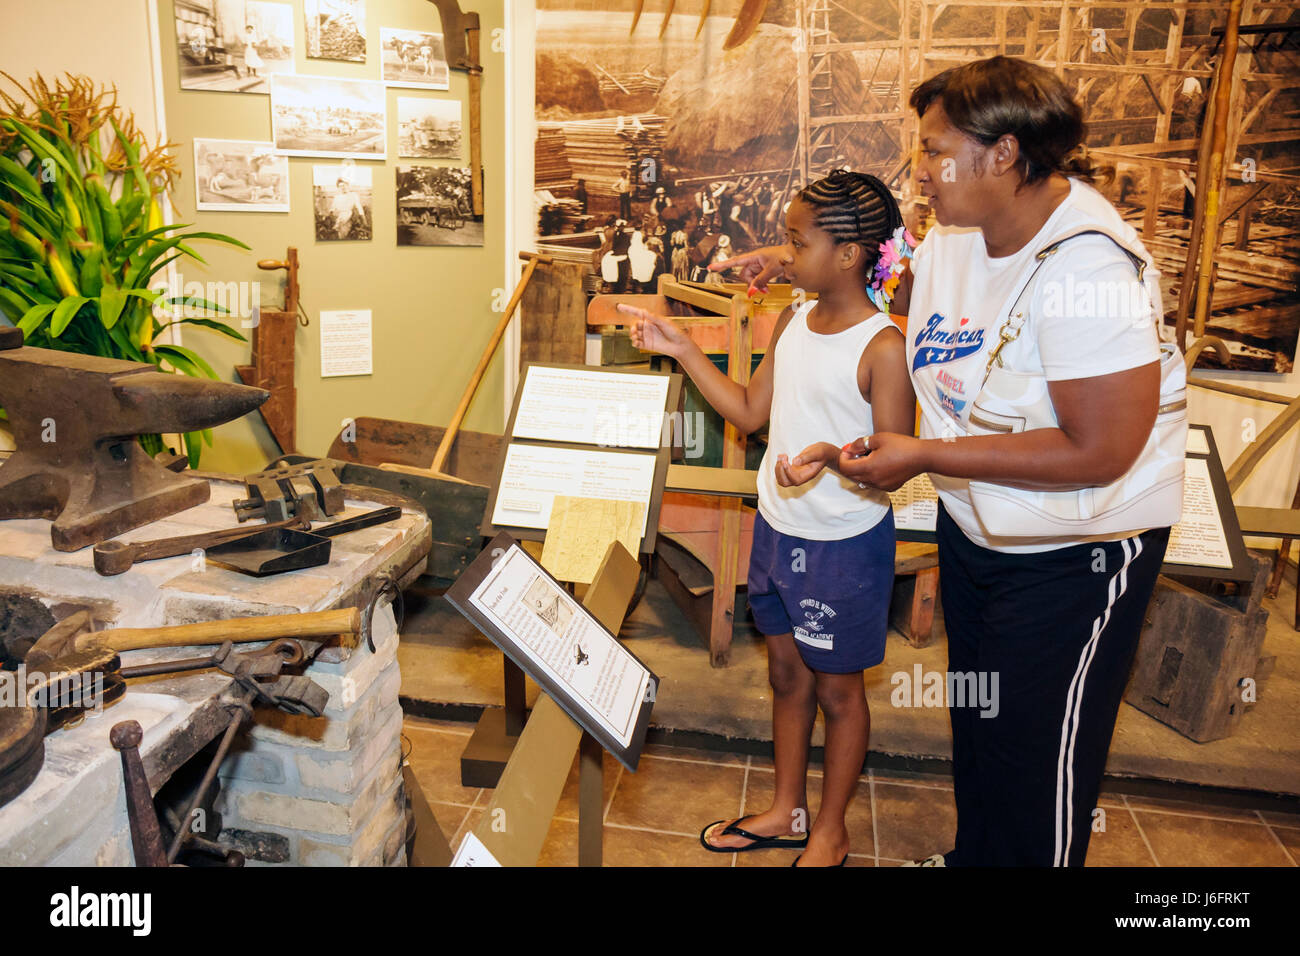 Wisconsin Kenosha Simmons Island Kenosha History Center Yesteryear Gallery Black woman girl mother child family - Stock Image